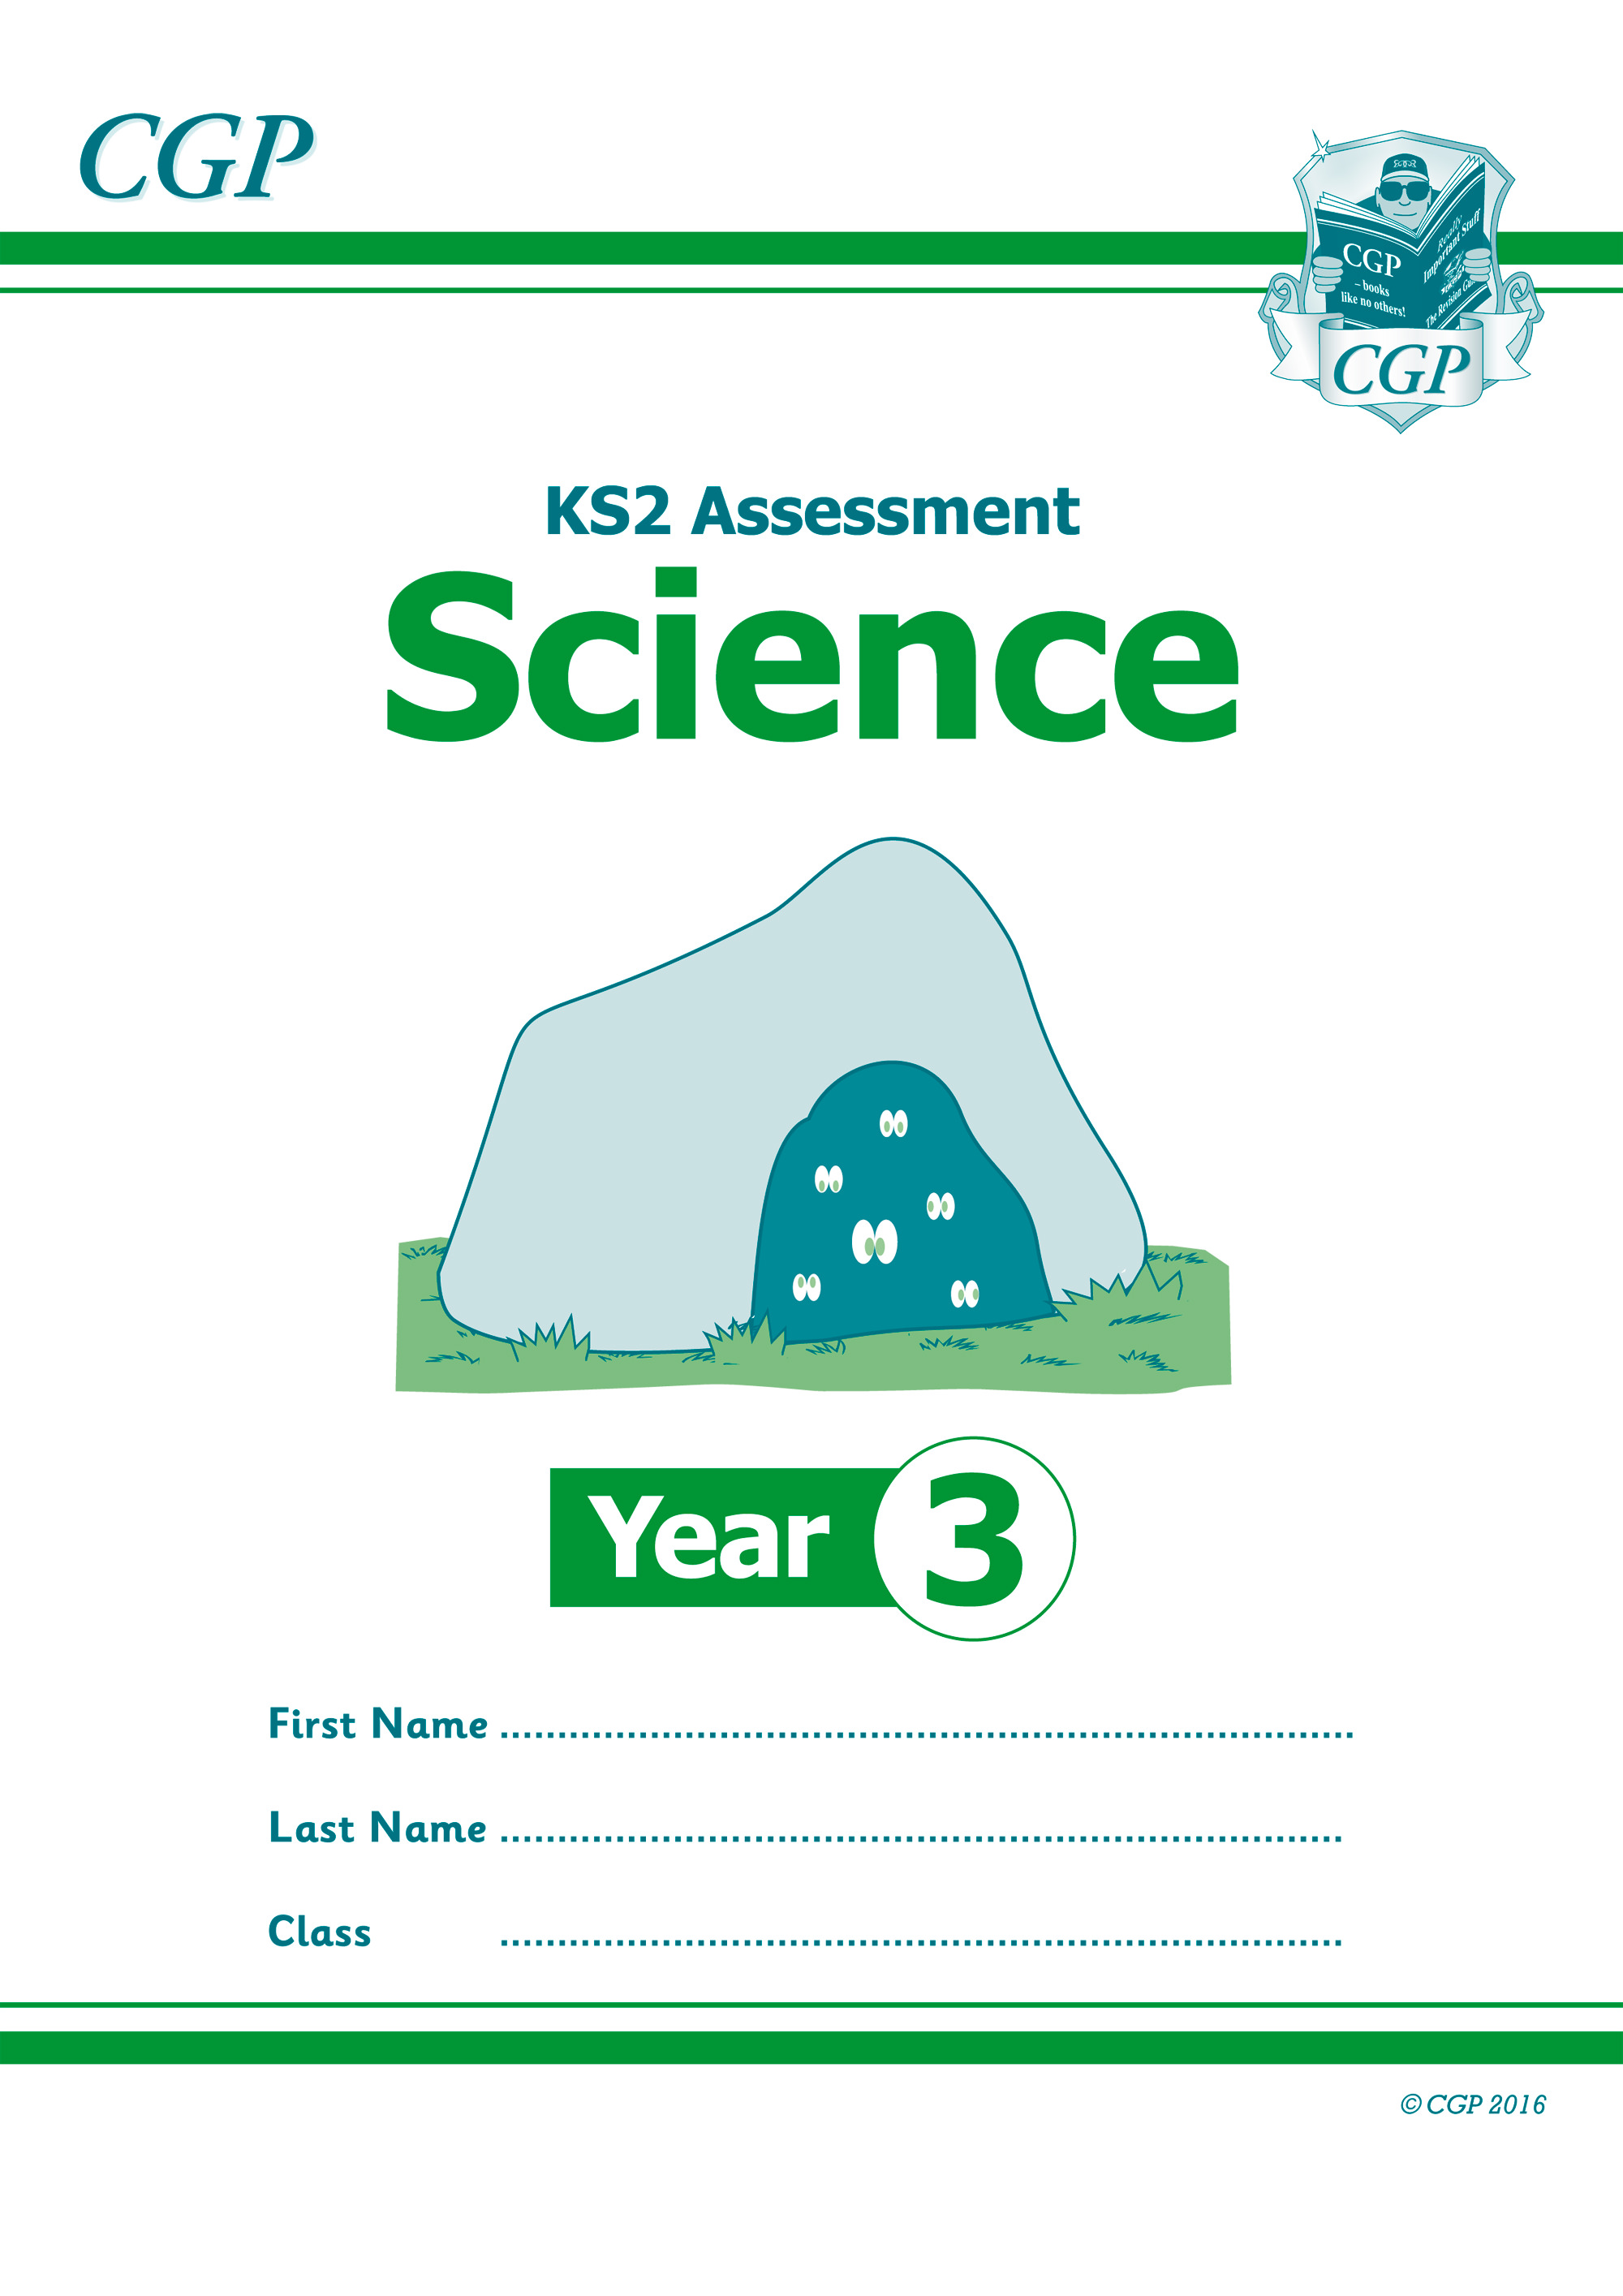 S3P21 - KS2 Assessment: Science - Year 3 Test